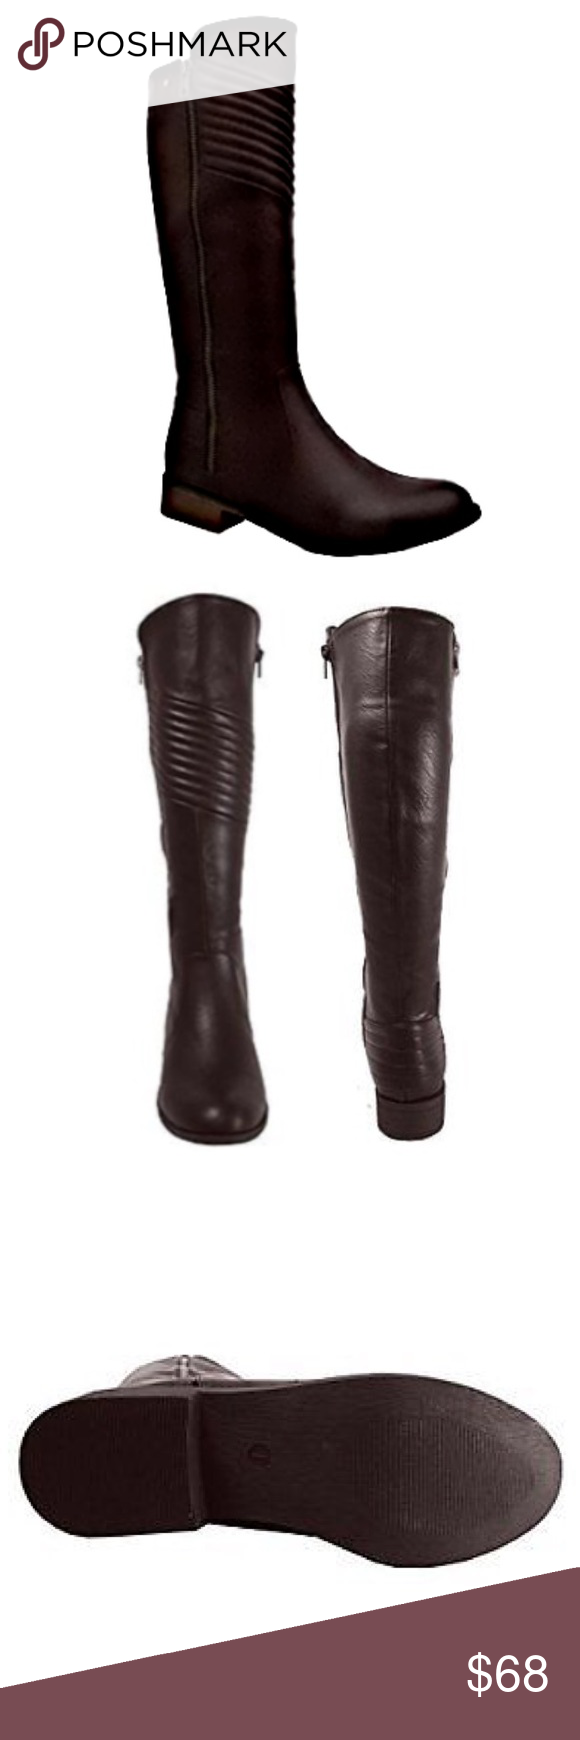 YOKI Quilted Zipper Riding BOOTS NEW IN BOX Brown BRAND NEW IN BOX!! Women's tall riding boots with quilted detailing pair well with jeans, & over leggings, for a casual, and comfortable outfit, and effortless style. These are the Perfect boots to pair with your all your favorite looks. Size: 10 / Color: Brown  BRAND NEW IN BOX!! Yoki Shoes Winter & Rain Boots